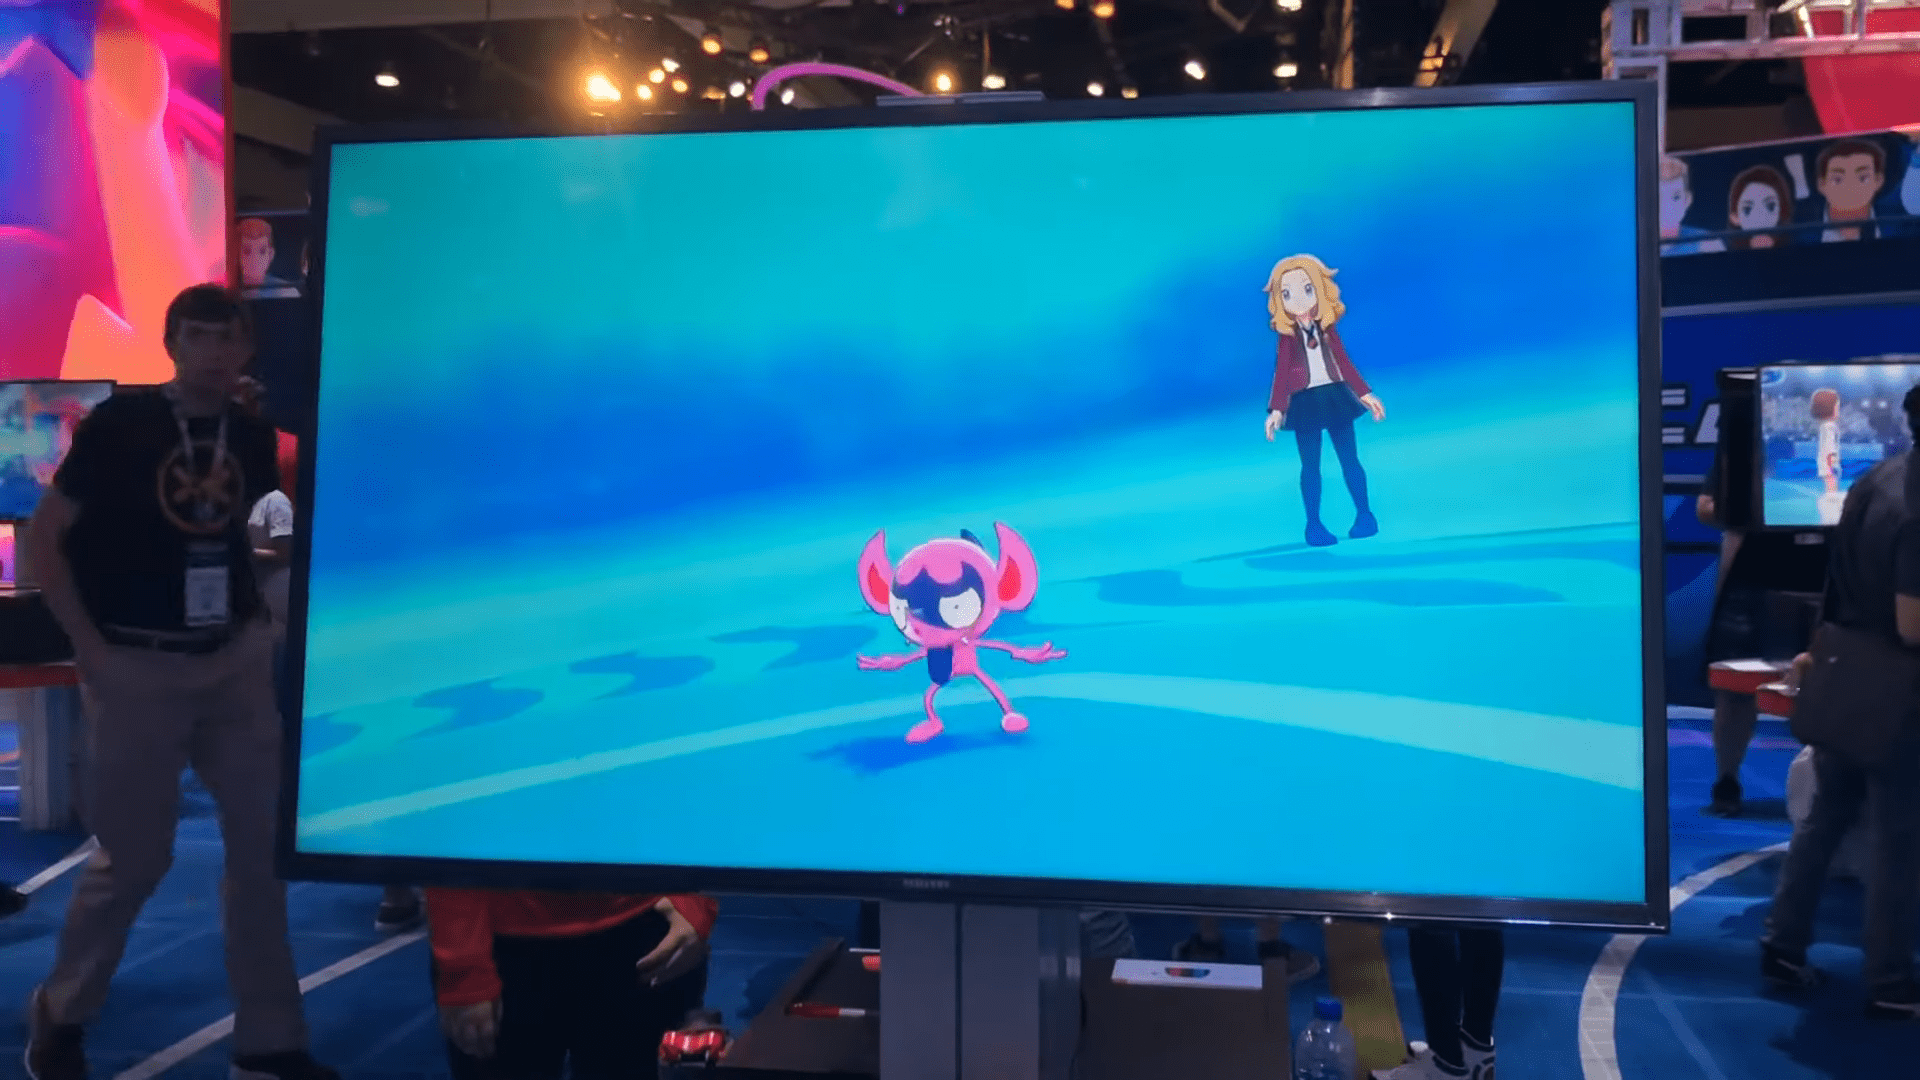 Potential Leaks Have Come To Light For Pokemon Sword and Shield